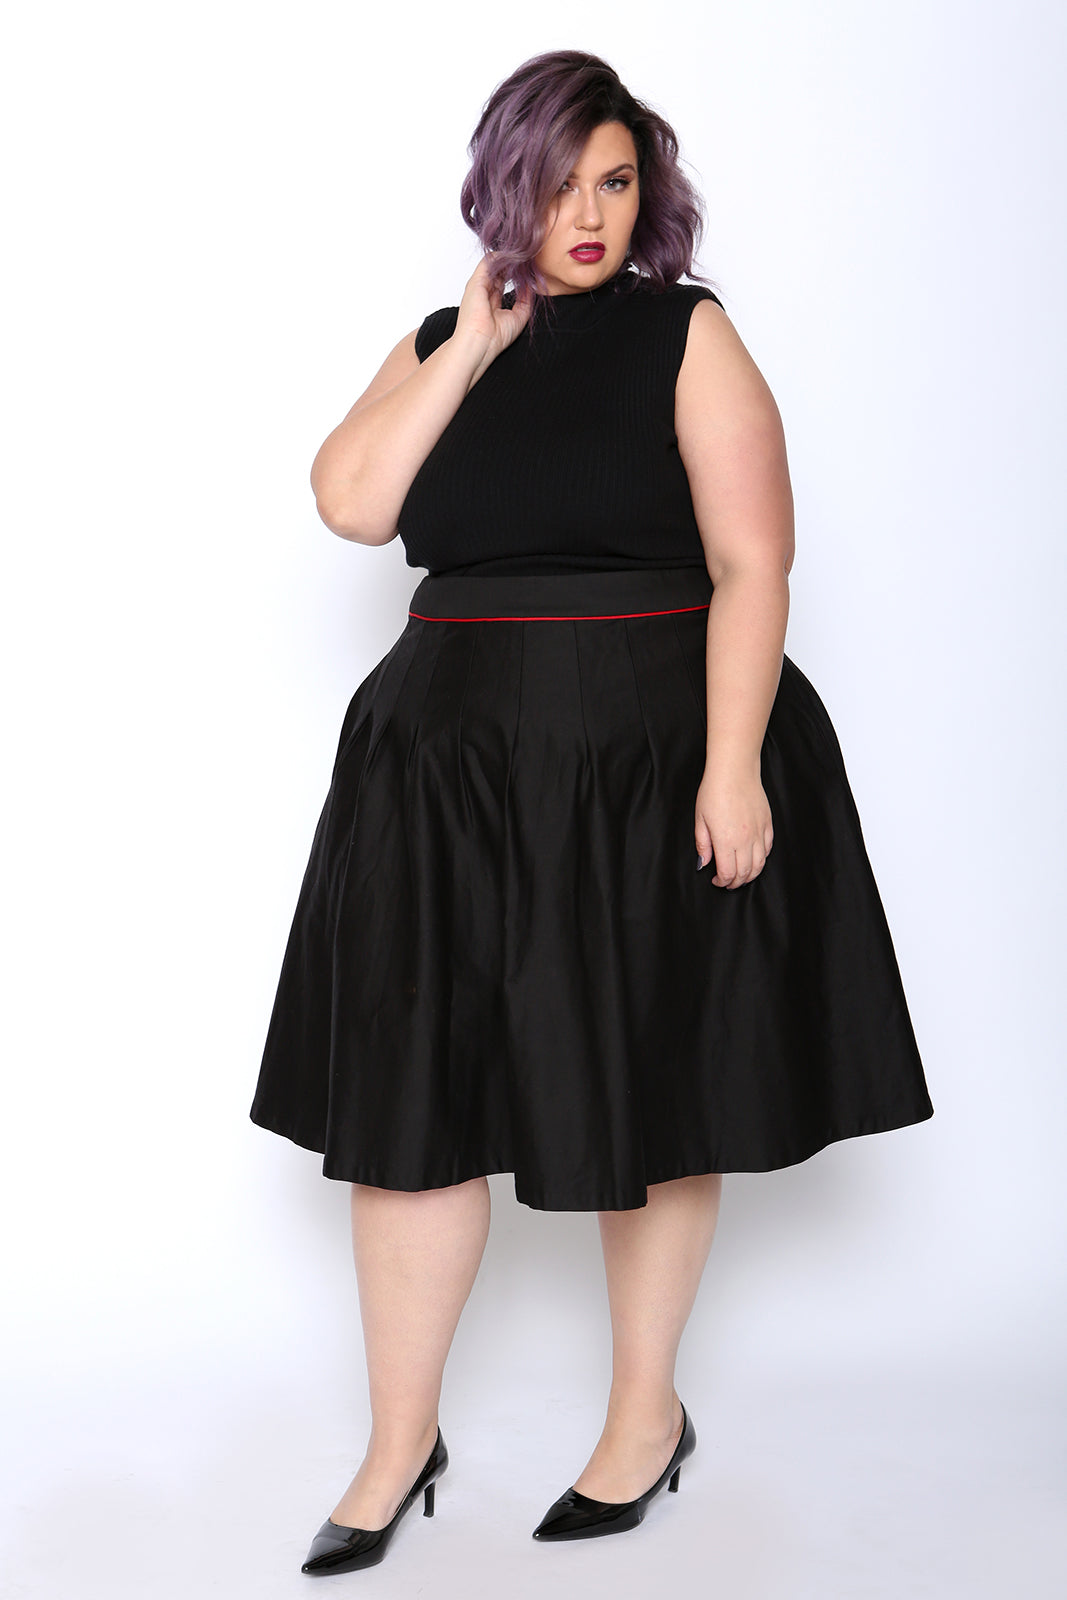 tru red piped black skater skirt - astra signature